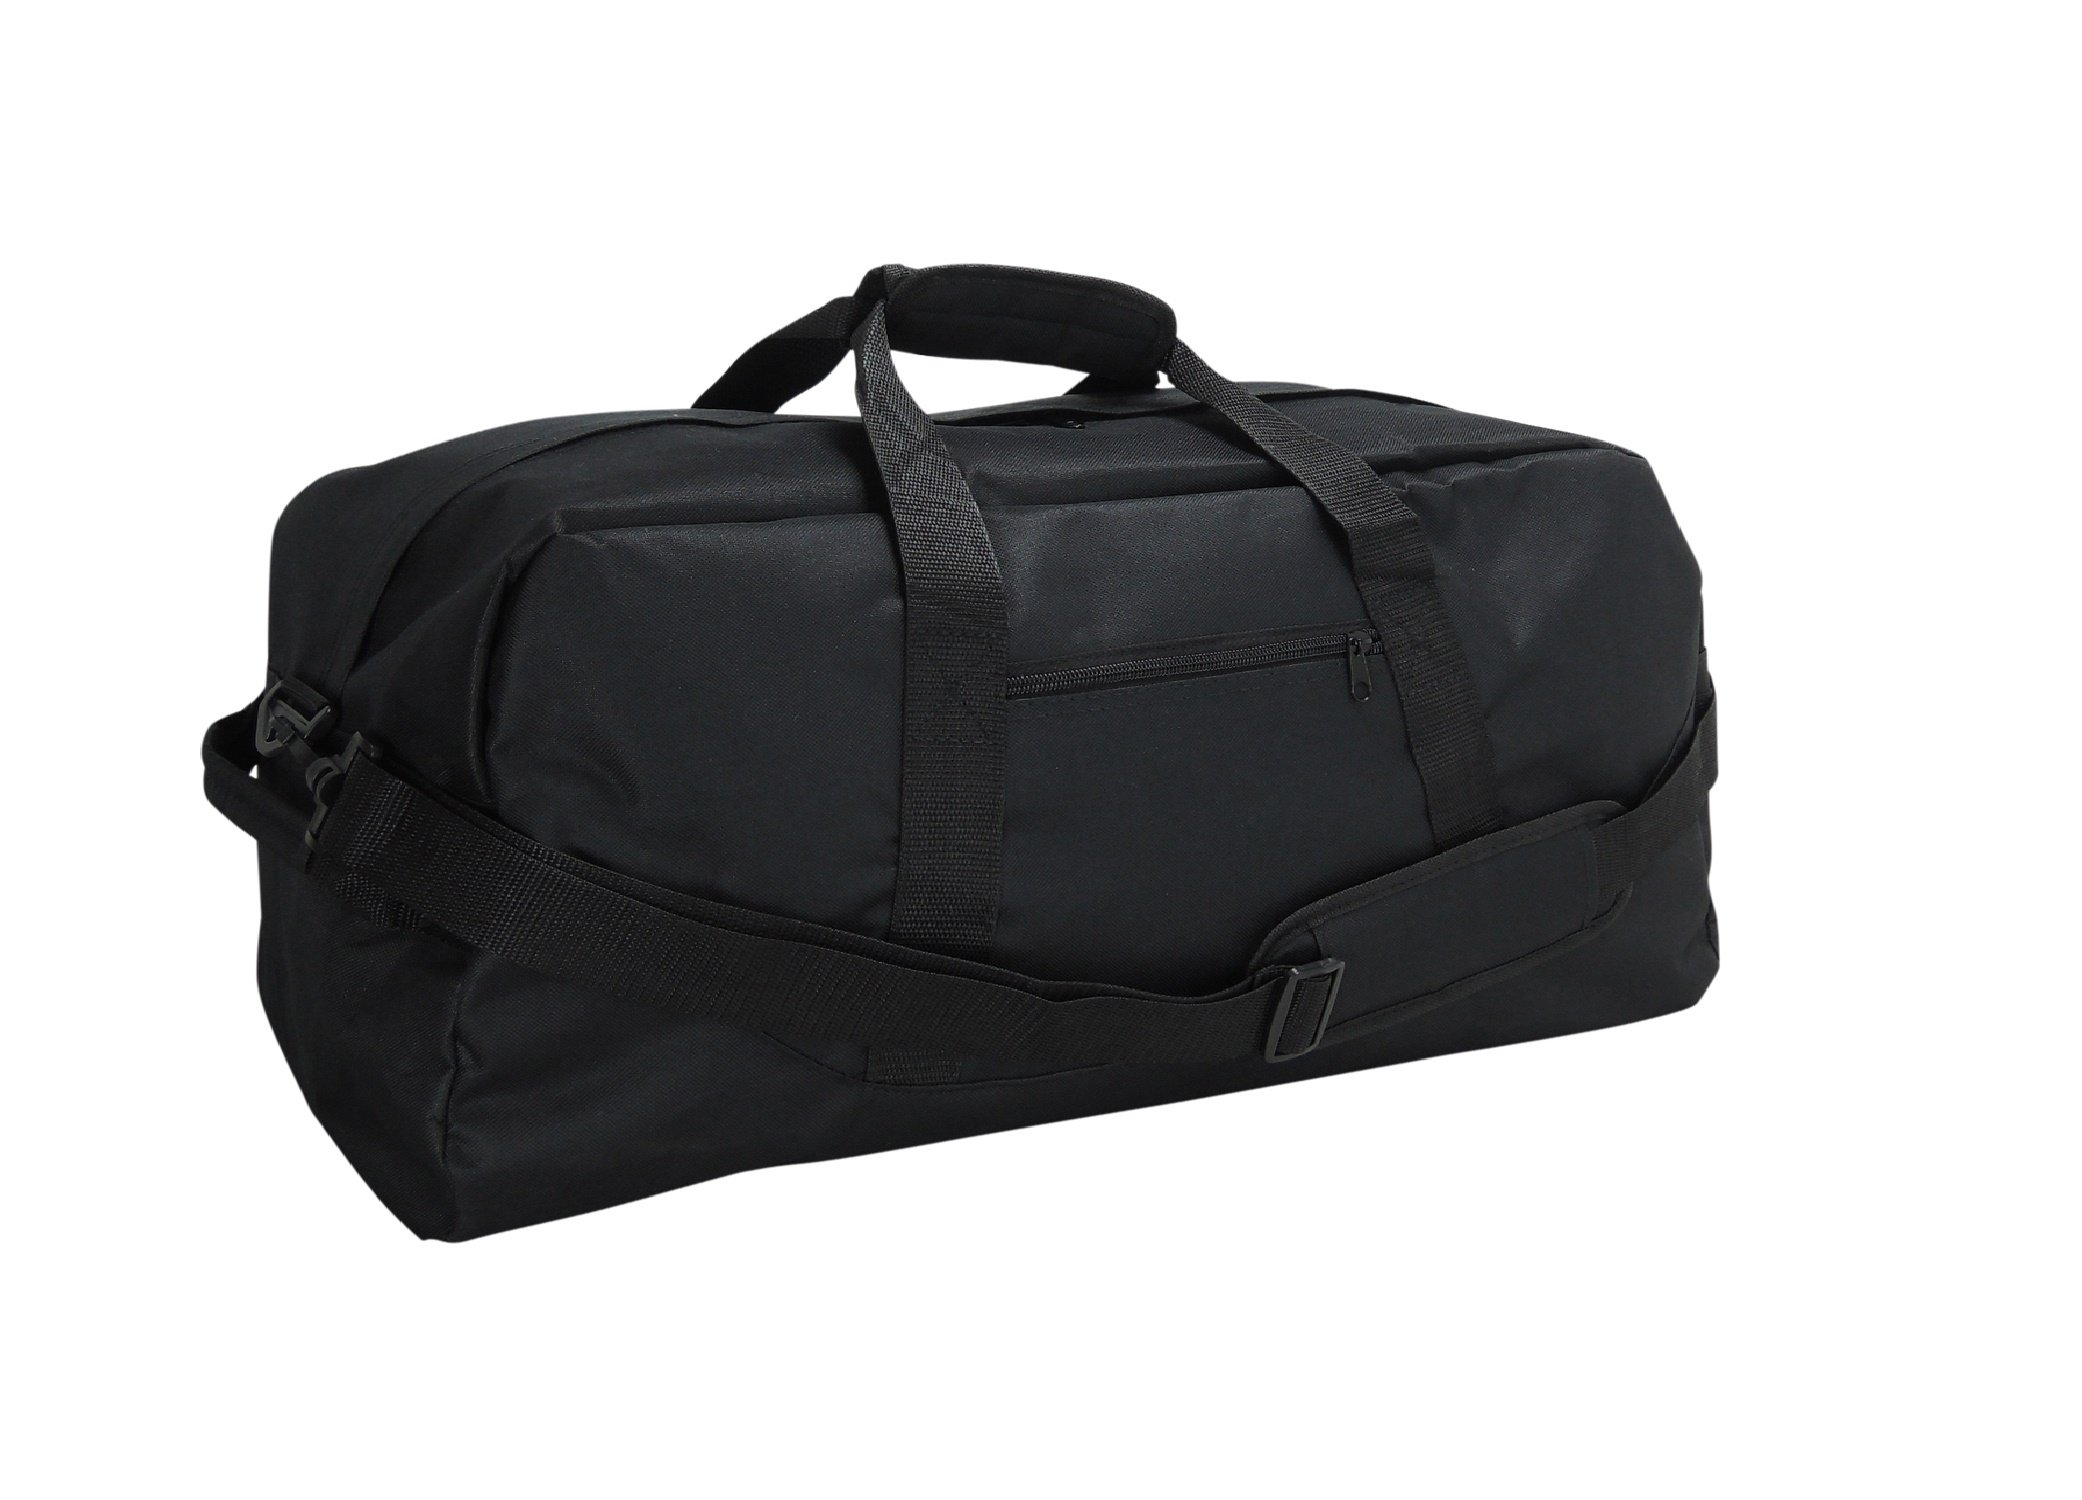 DALIX 21'' Large Duffle Bag with Adjustable Strap (Black)